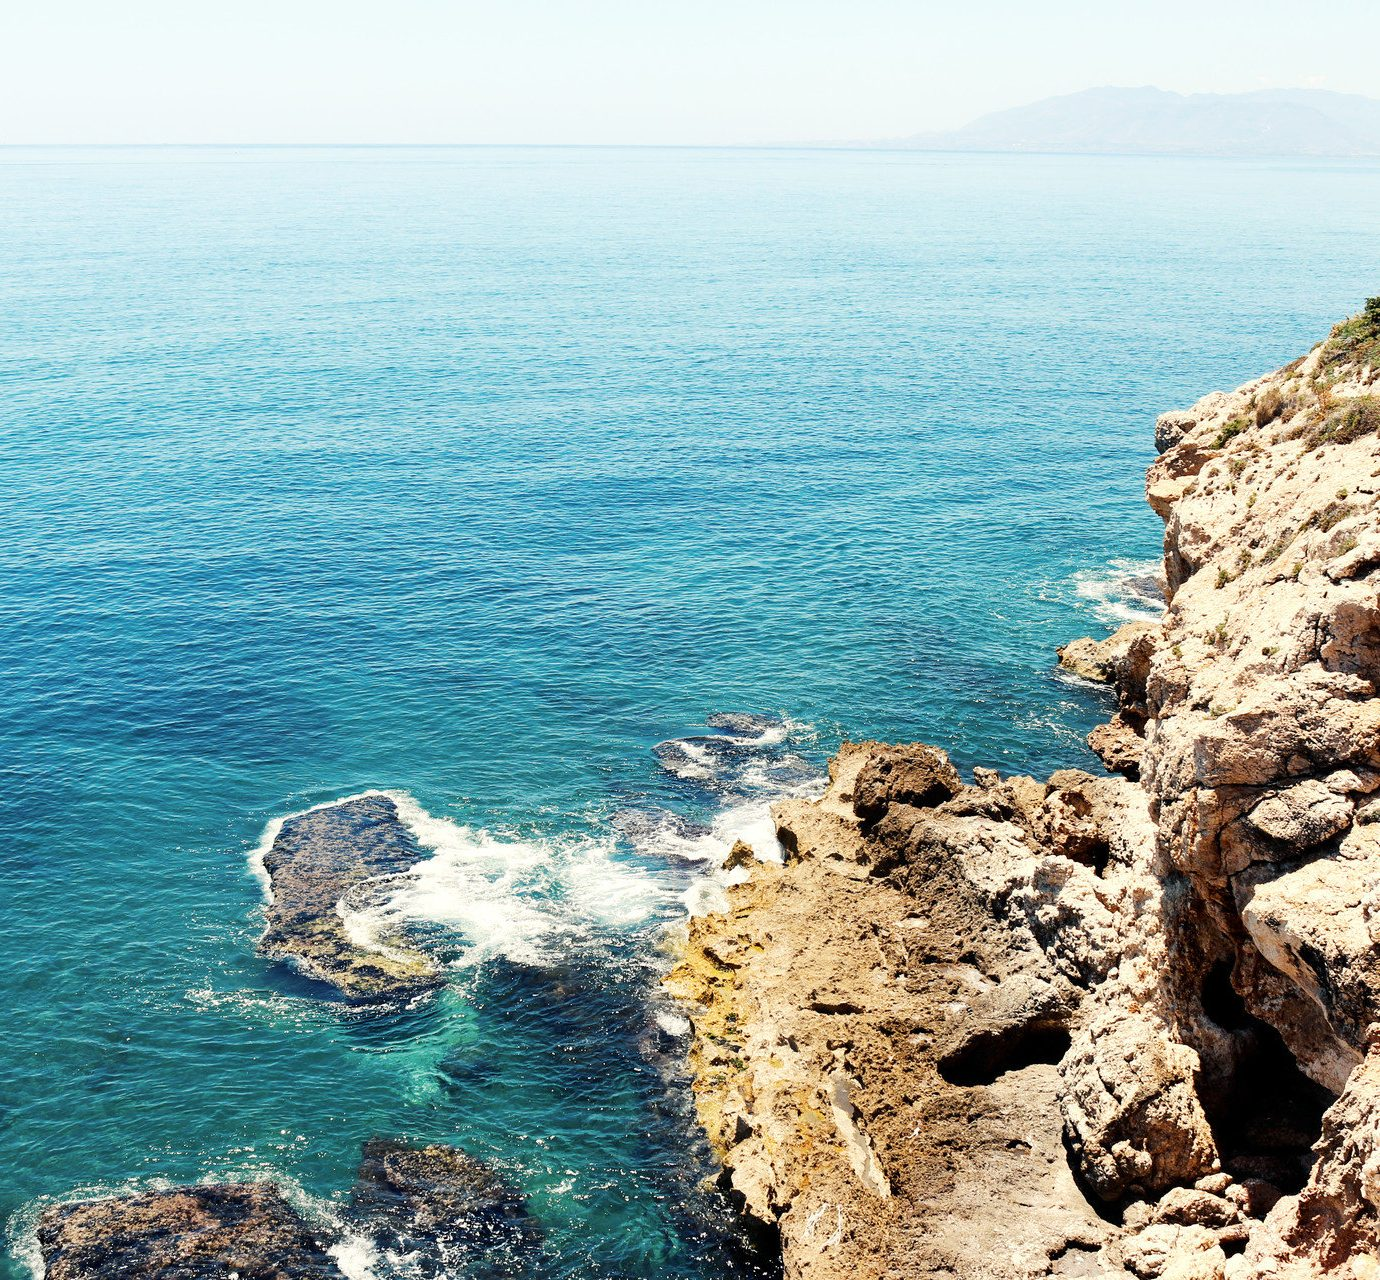 airy calm clear water Cliffs isolation Ocean overlook remote rock Rocks Scenic views serene turquoise view viewpoint outdoor water sky rocky Nature Sea Coast shore landform cliff terrain cape islet bay cove Beach reef overlooking Island